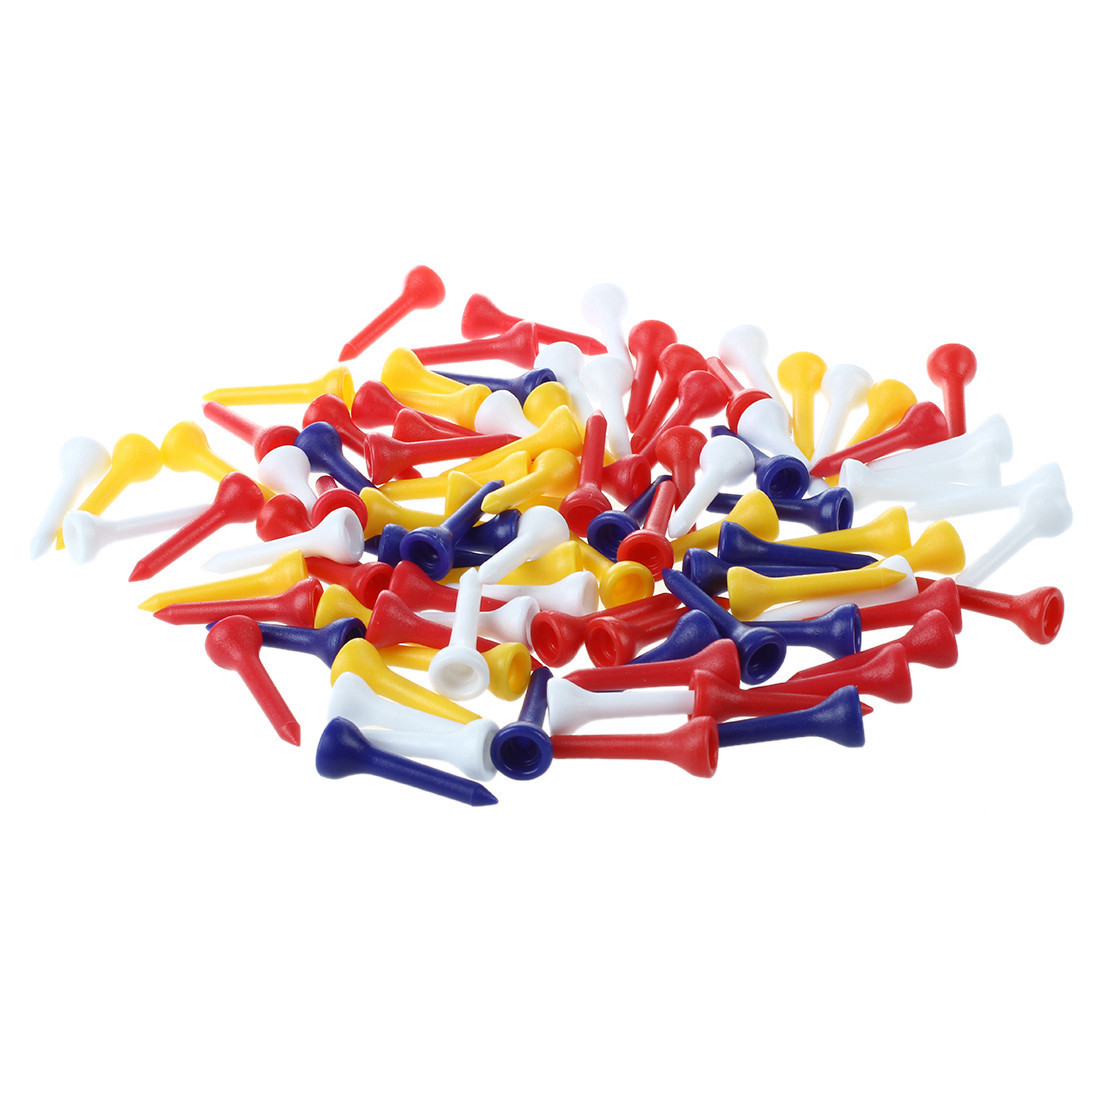 MUMIAN 100pcs 35mm color mixed plastic Golf Tees